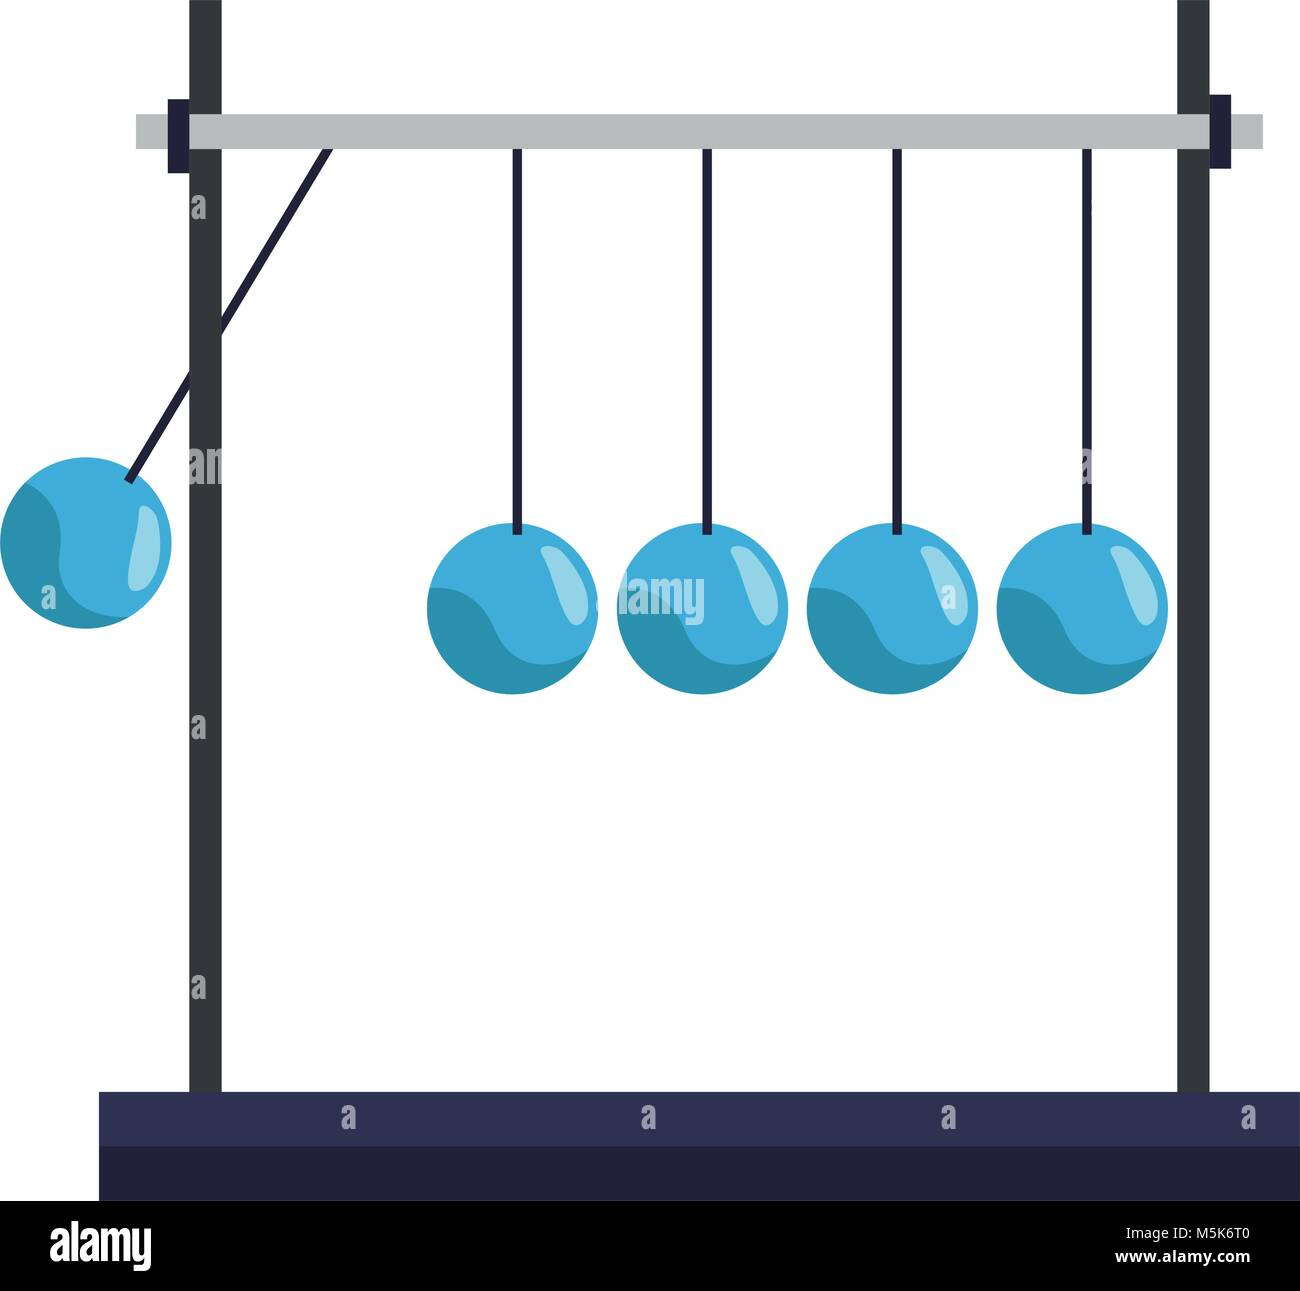 Pendulum Game Stock Photos Images Alamy Back Gt Gallery For Simple Free Body Diagram Newton Cradle Image